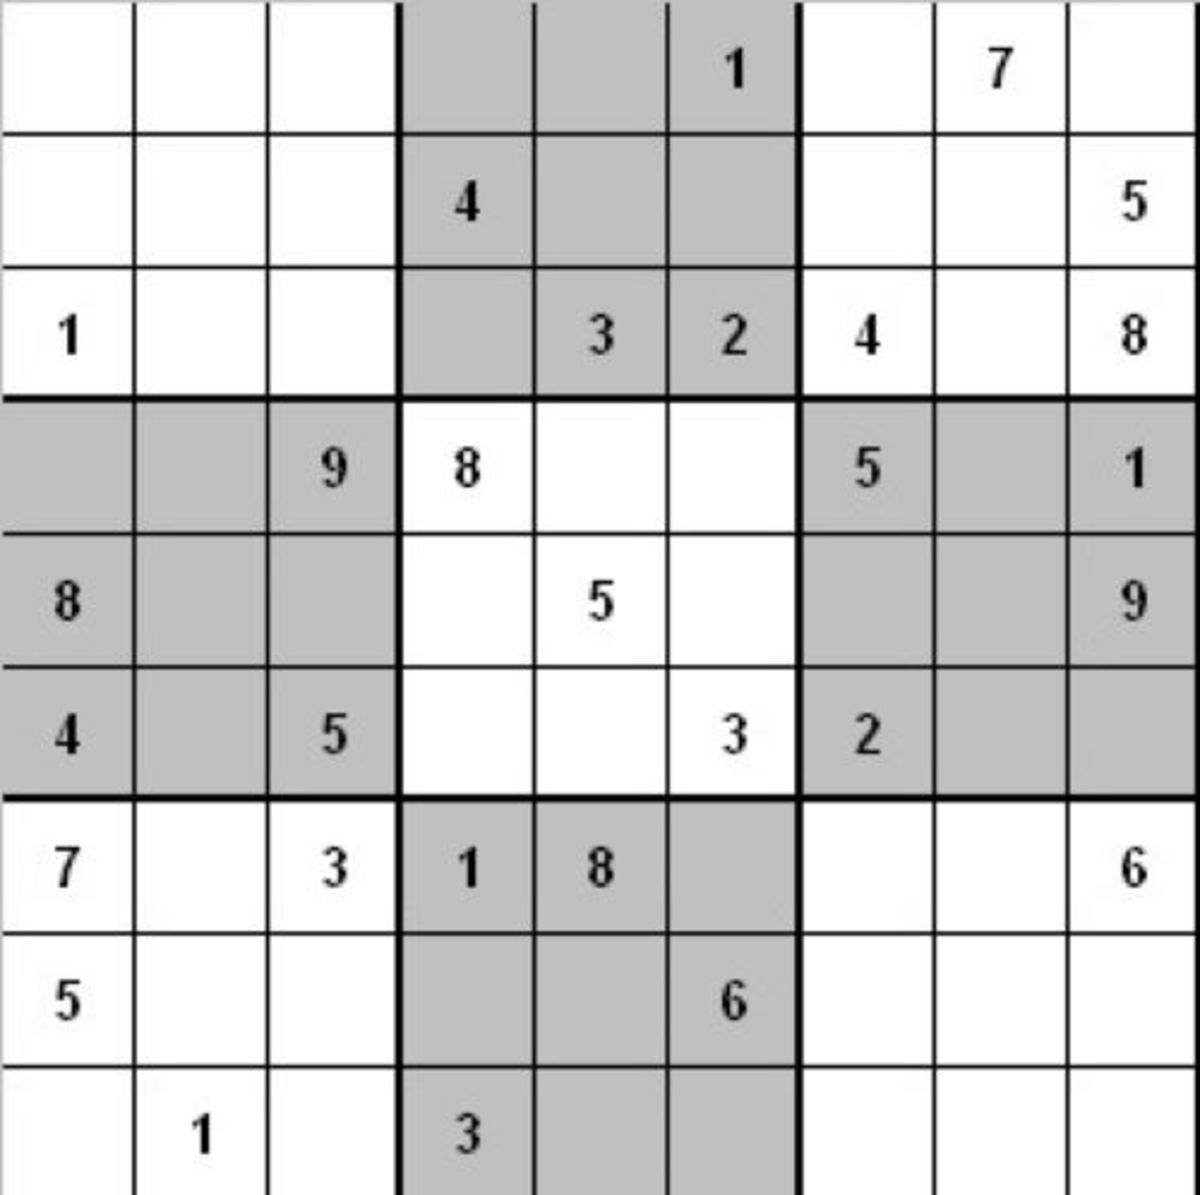 https://commons.wikimedia.org/wiki/File:Sudoku_distinction_of_cases.PNG?uselang=en-gb